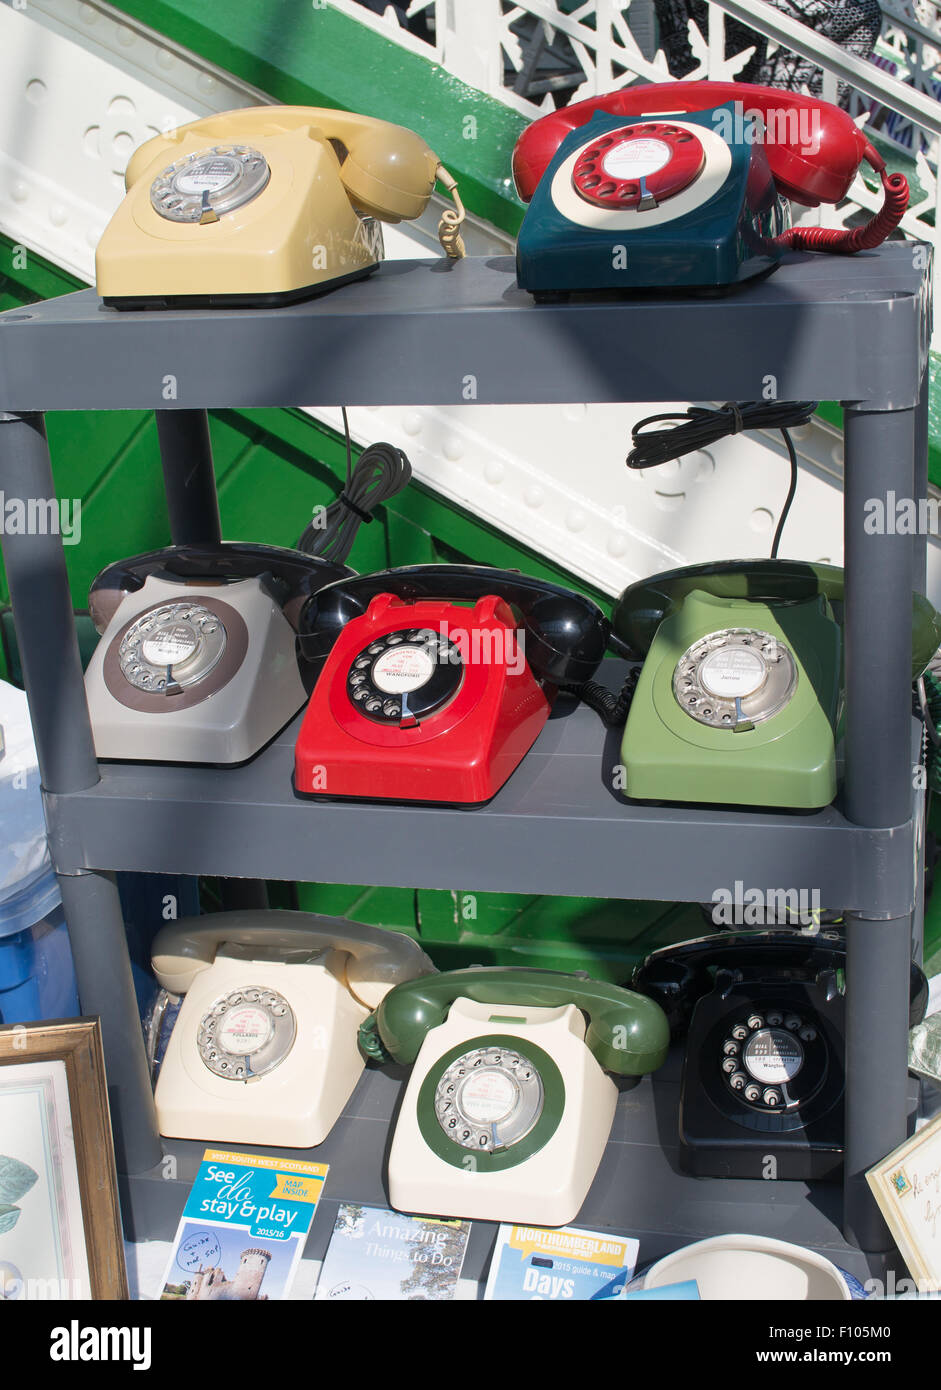 A collection of old dial up analogue phones at Tynemouth Station Market, North Tyneside, England, UK - Stock Image